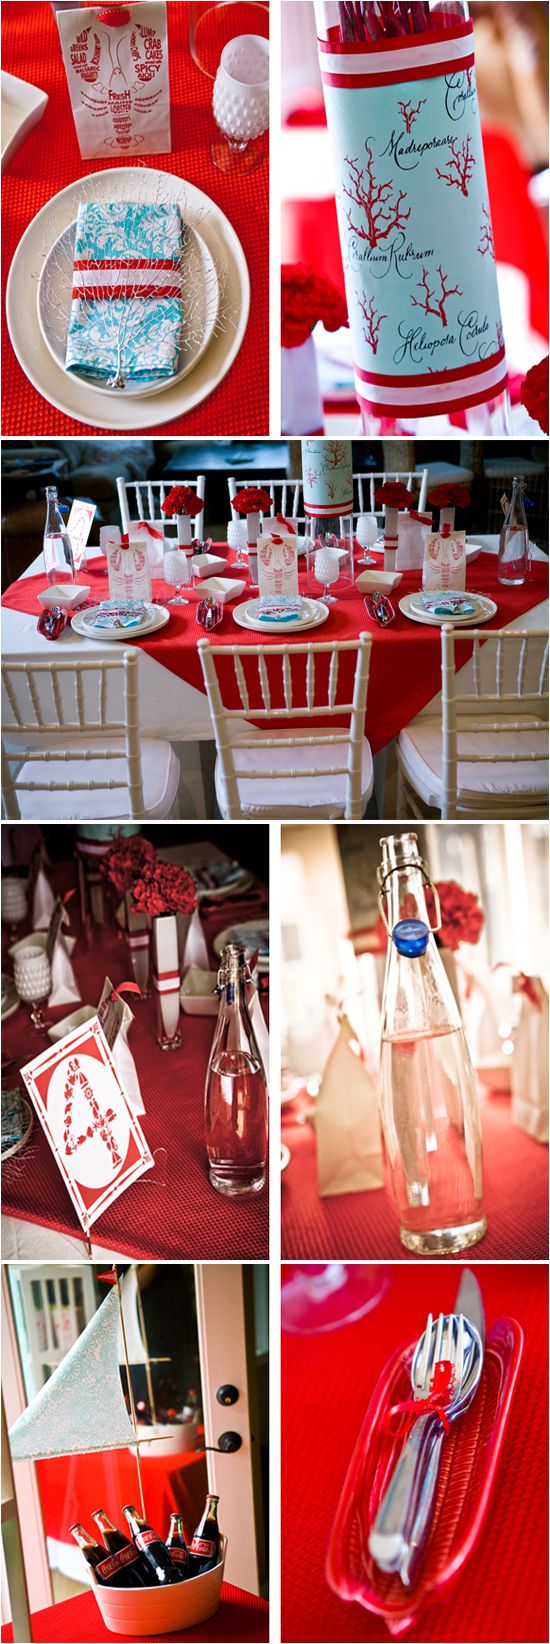 cute way to do a white table cloth with a smaller red one on top.  note to self.  4th of july